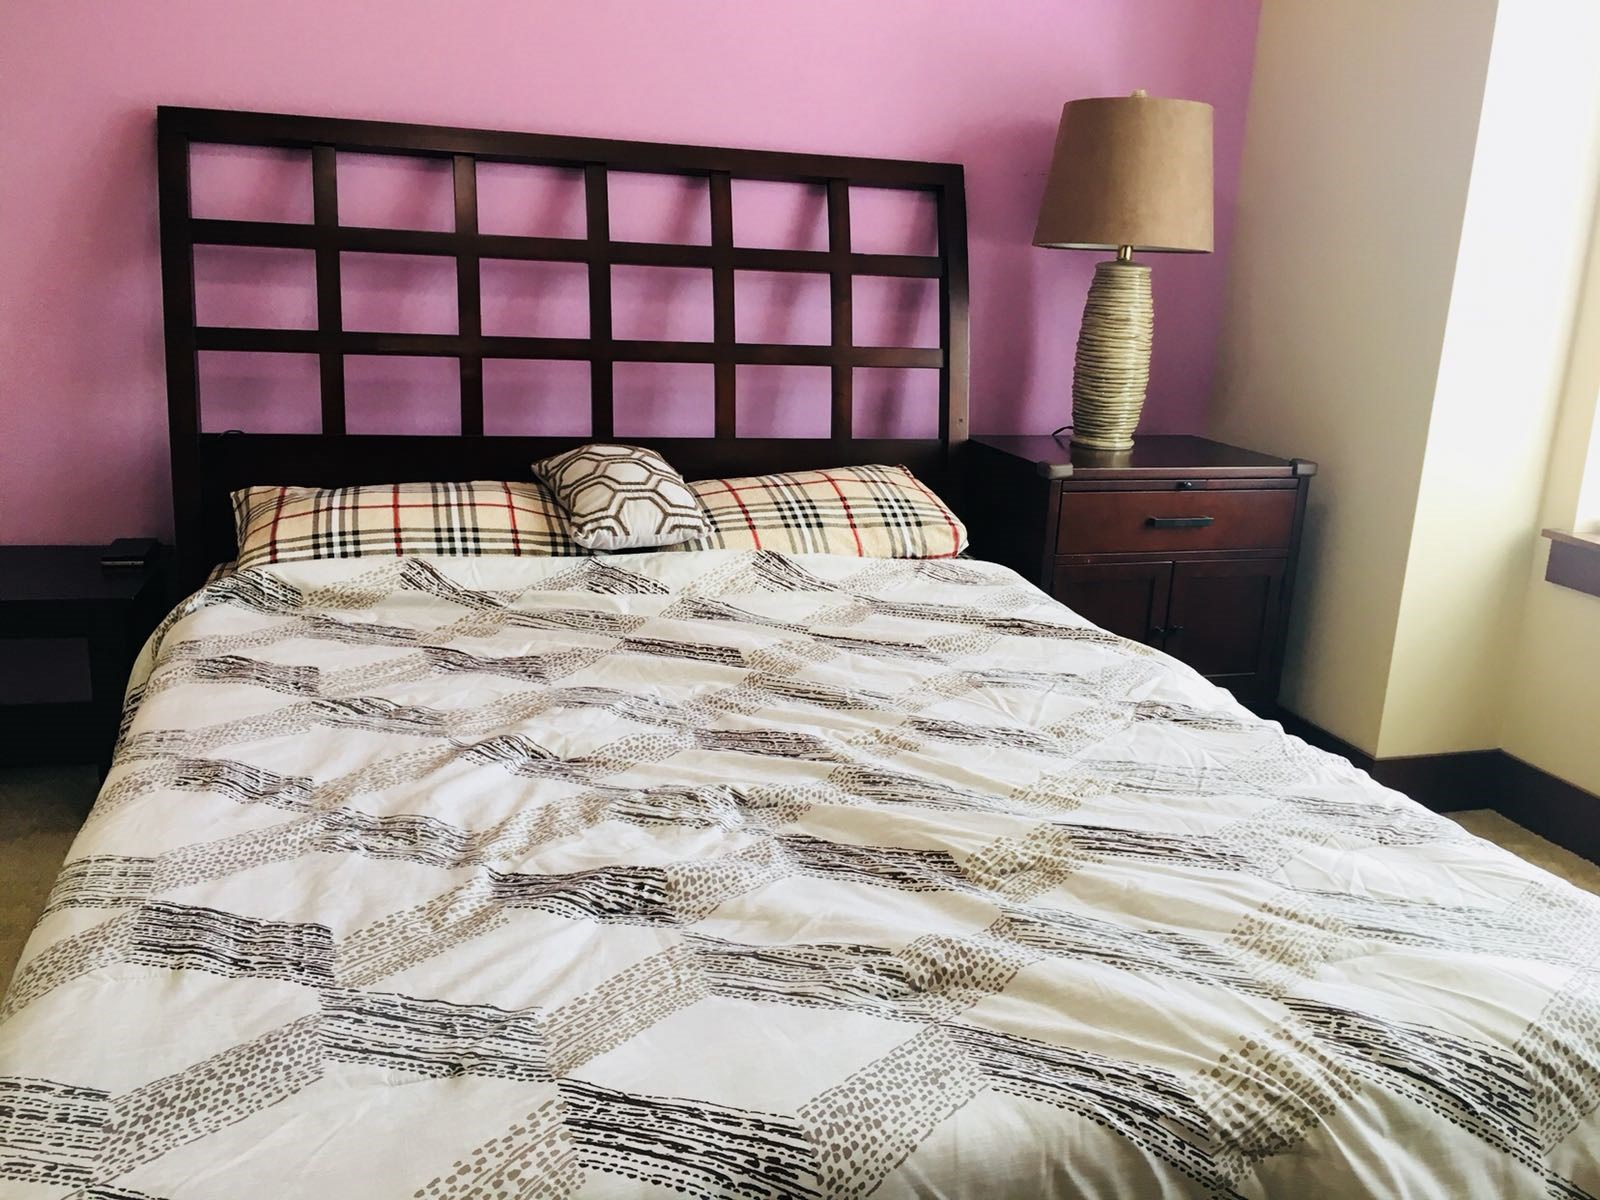 Fully Furnished Private Room(Bed, Tv, Dresser And Other Furniture) With